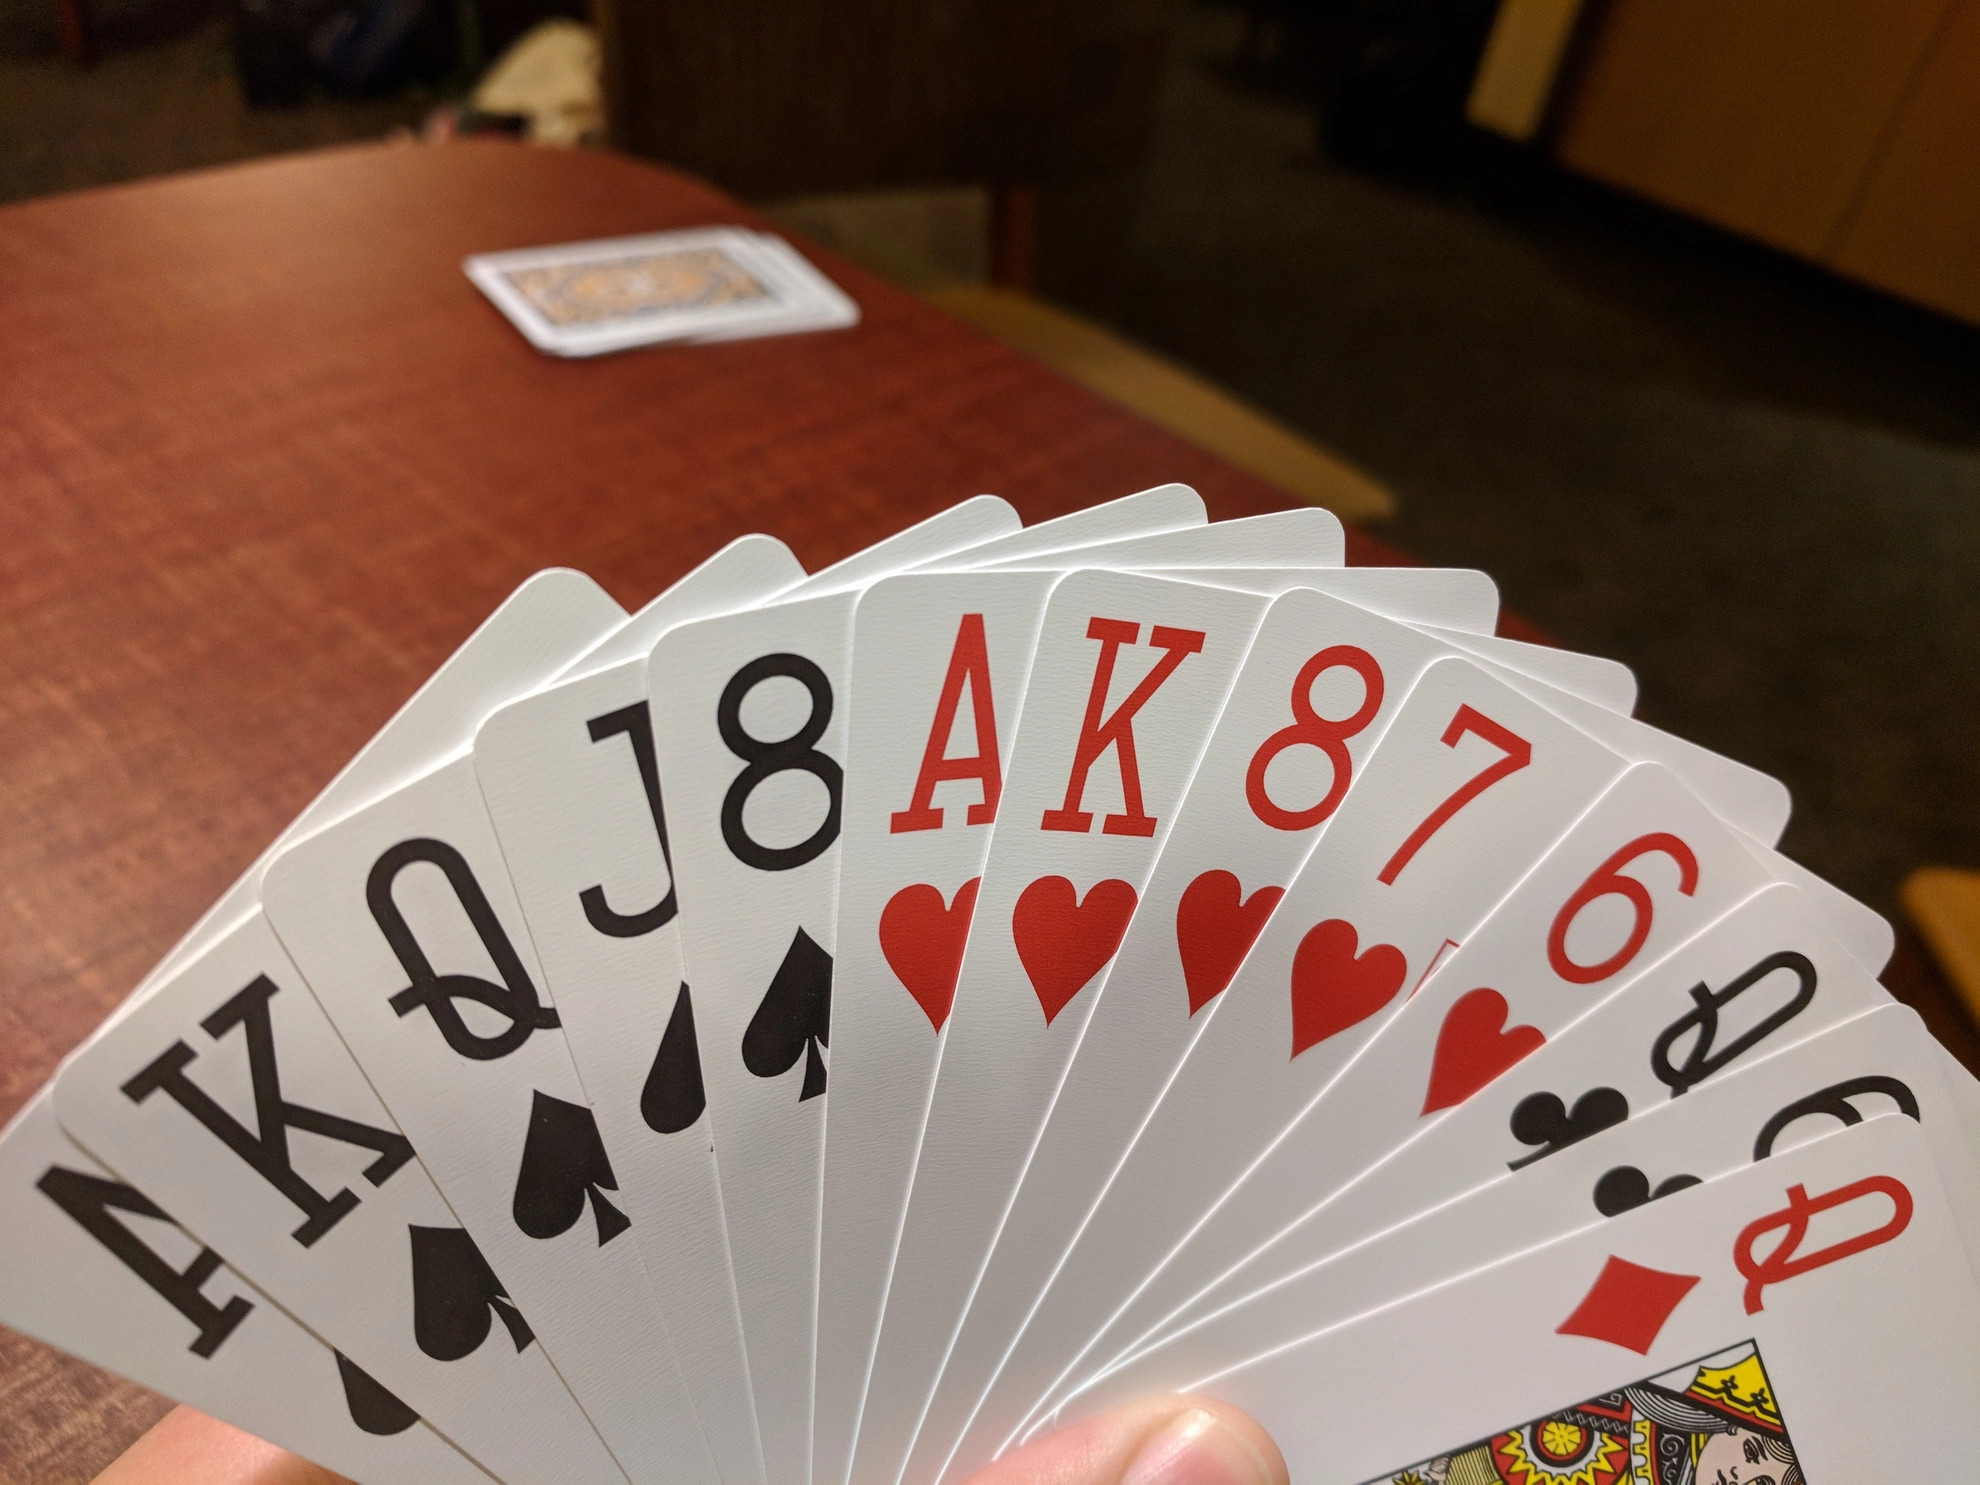 A hand of 13 playing cards sorted by suit.